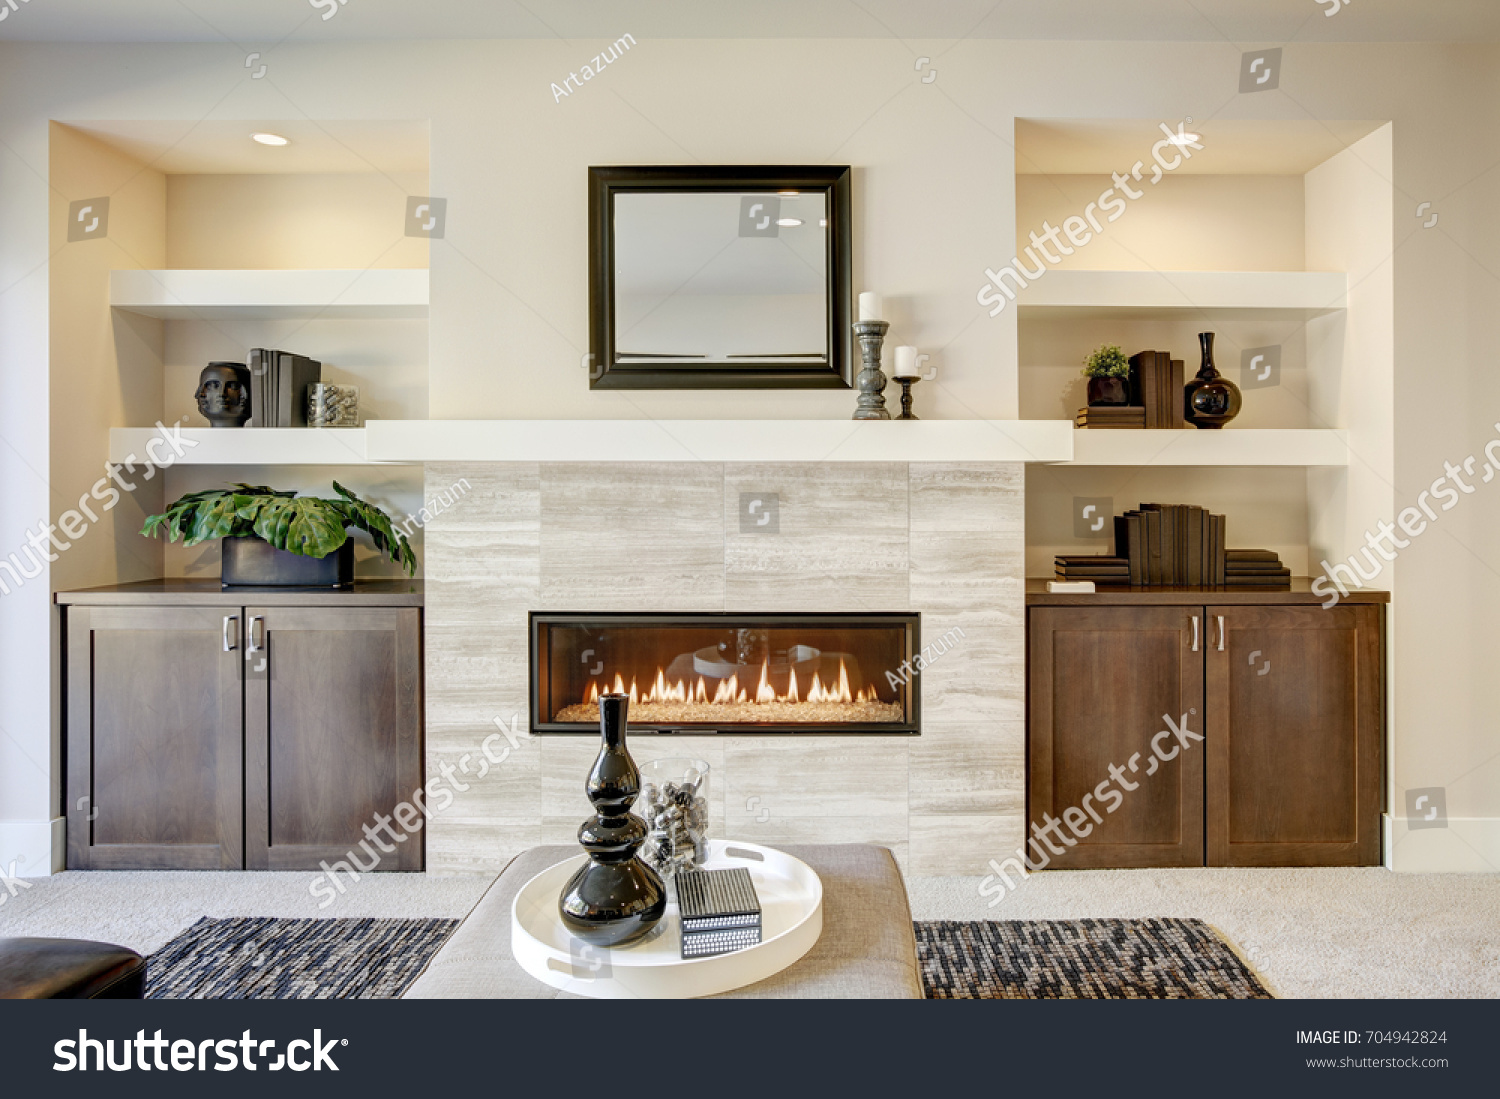 Family Room Design Traditional Fireplace Framed Stock Photo (Royalty ...